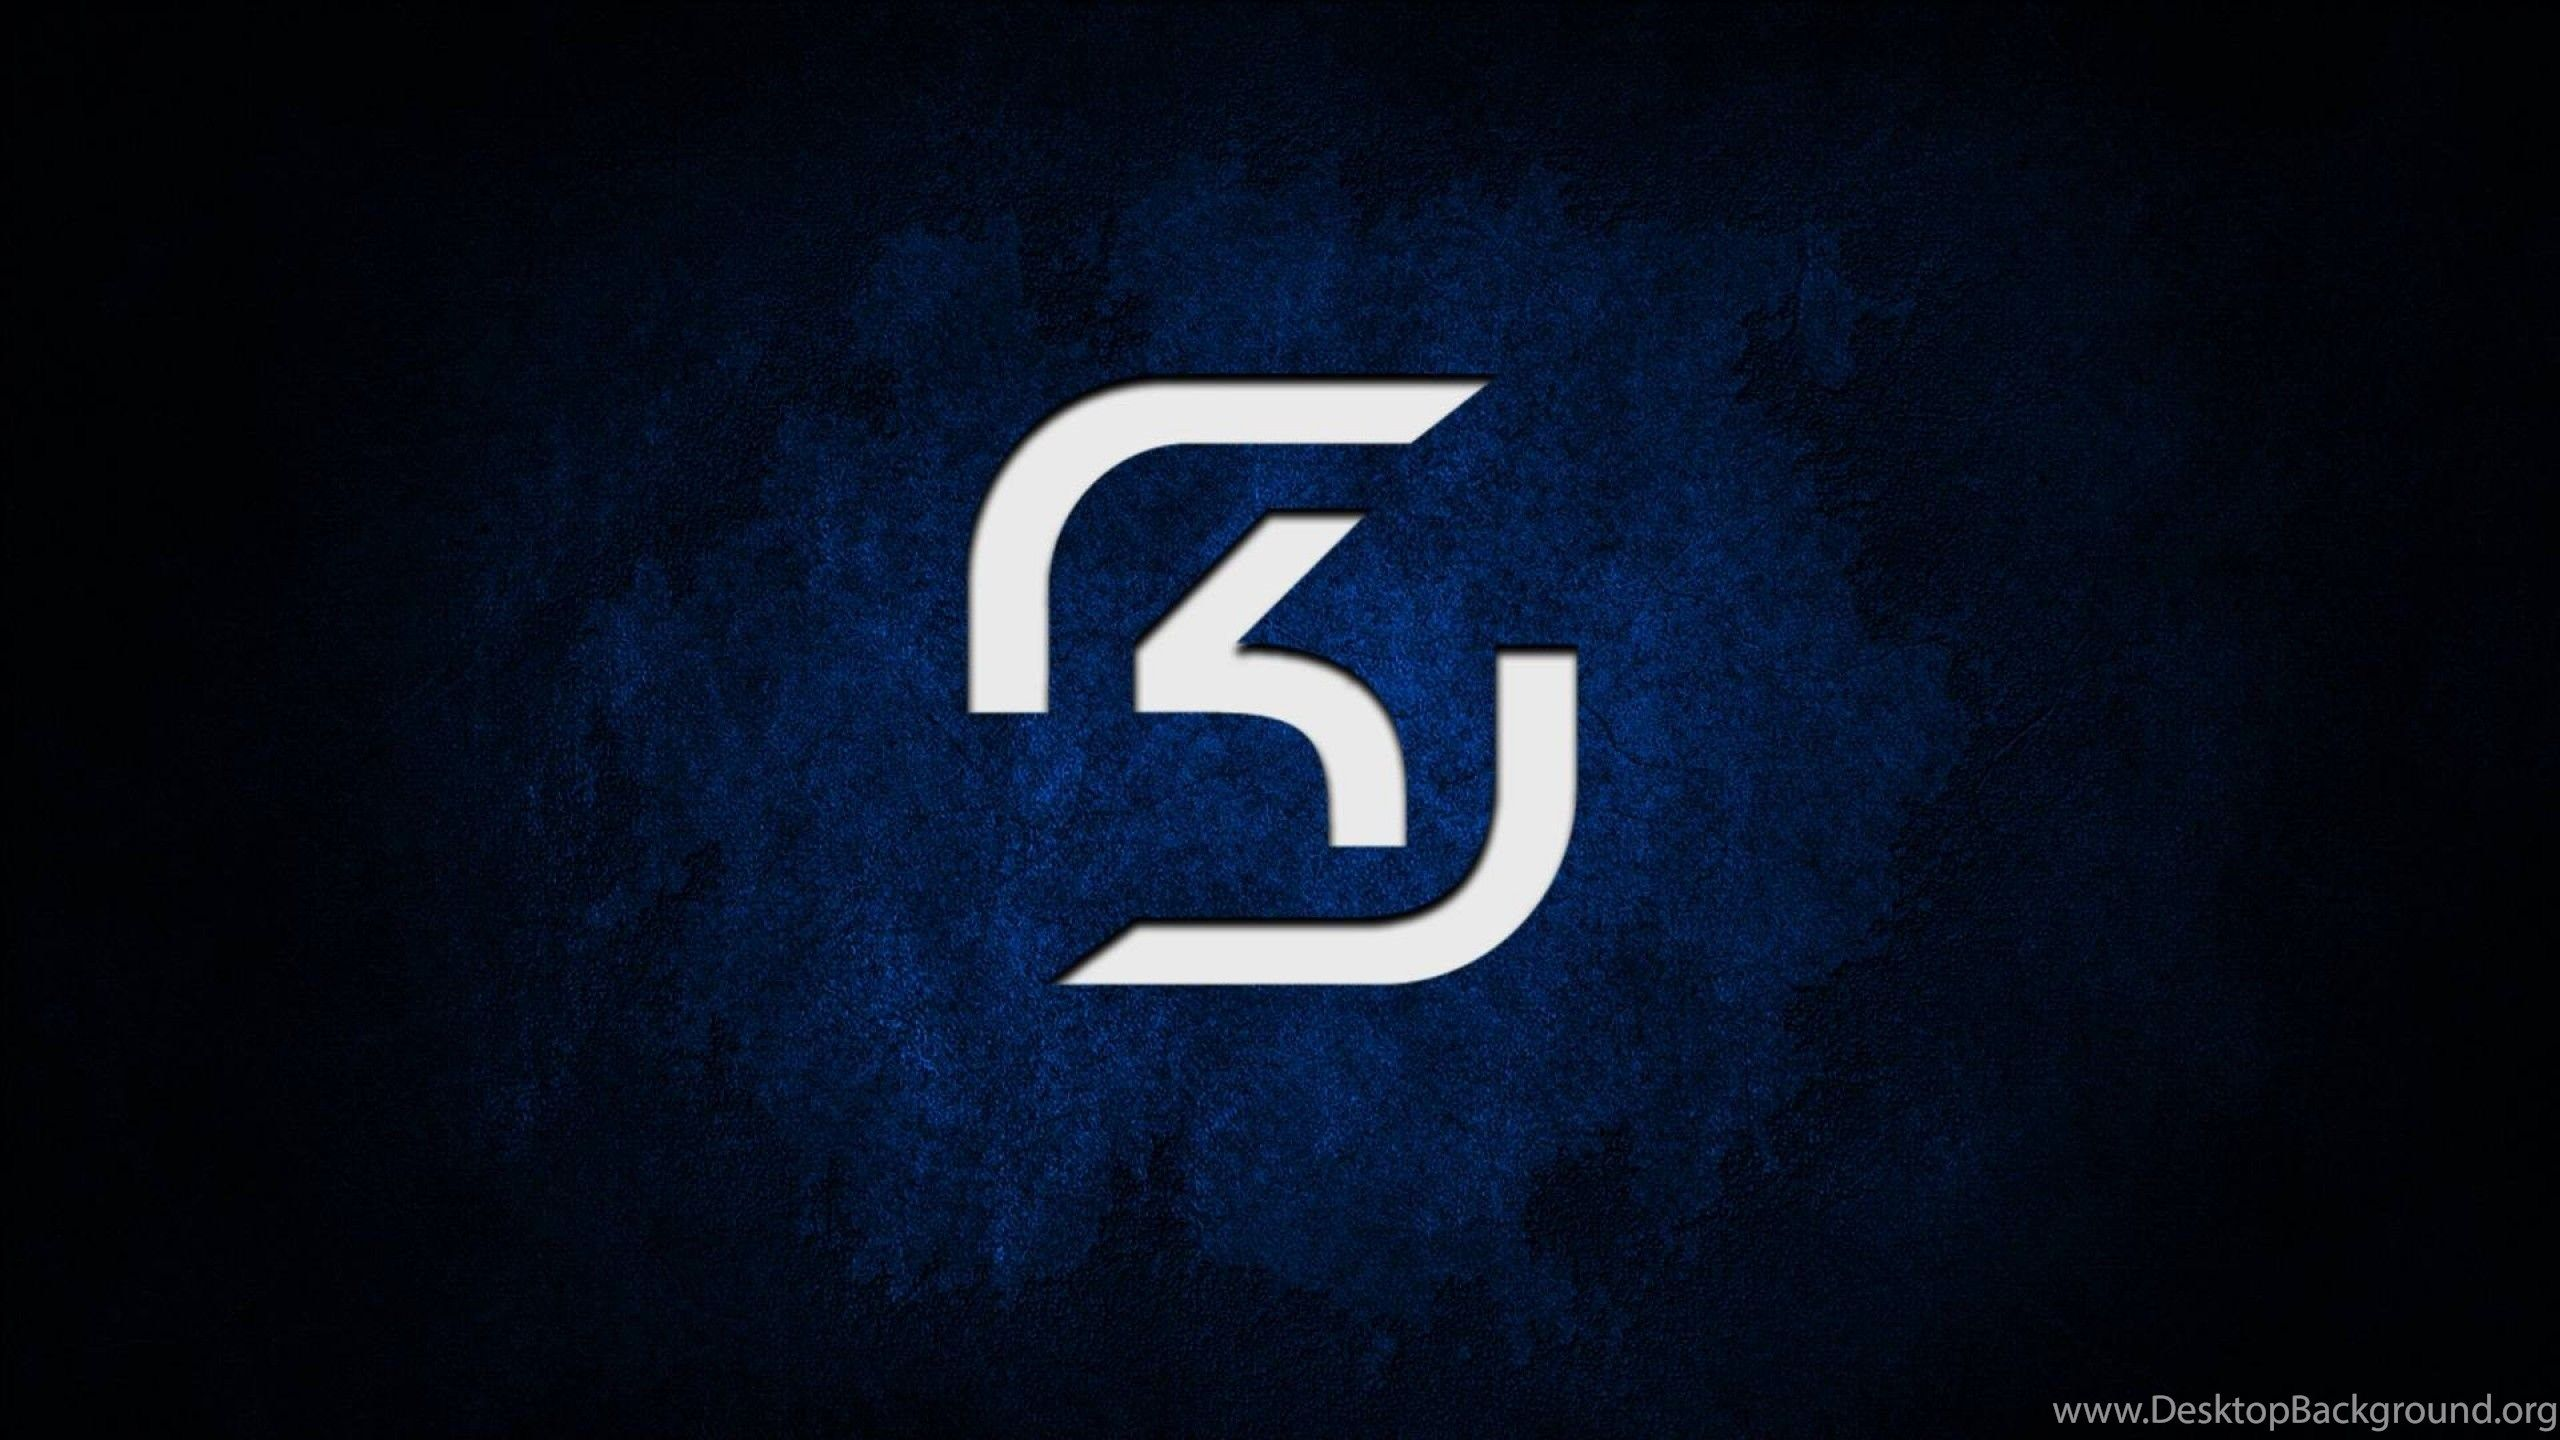 2560x1440 Gallery For Sk Gaming Wallpapers Desktop Background